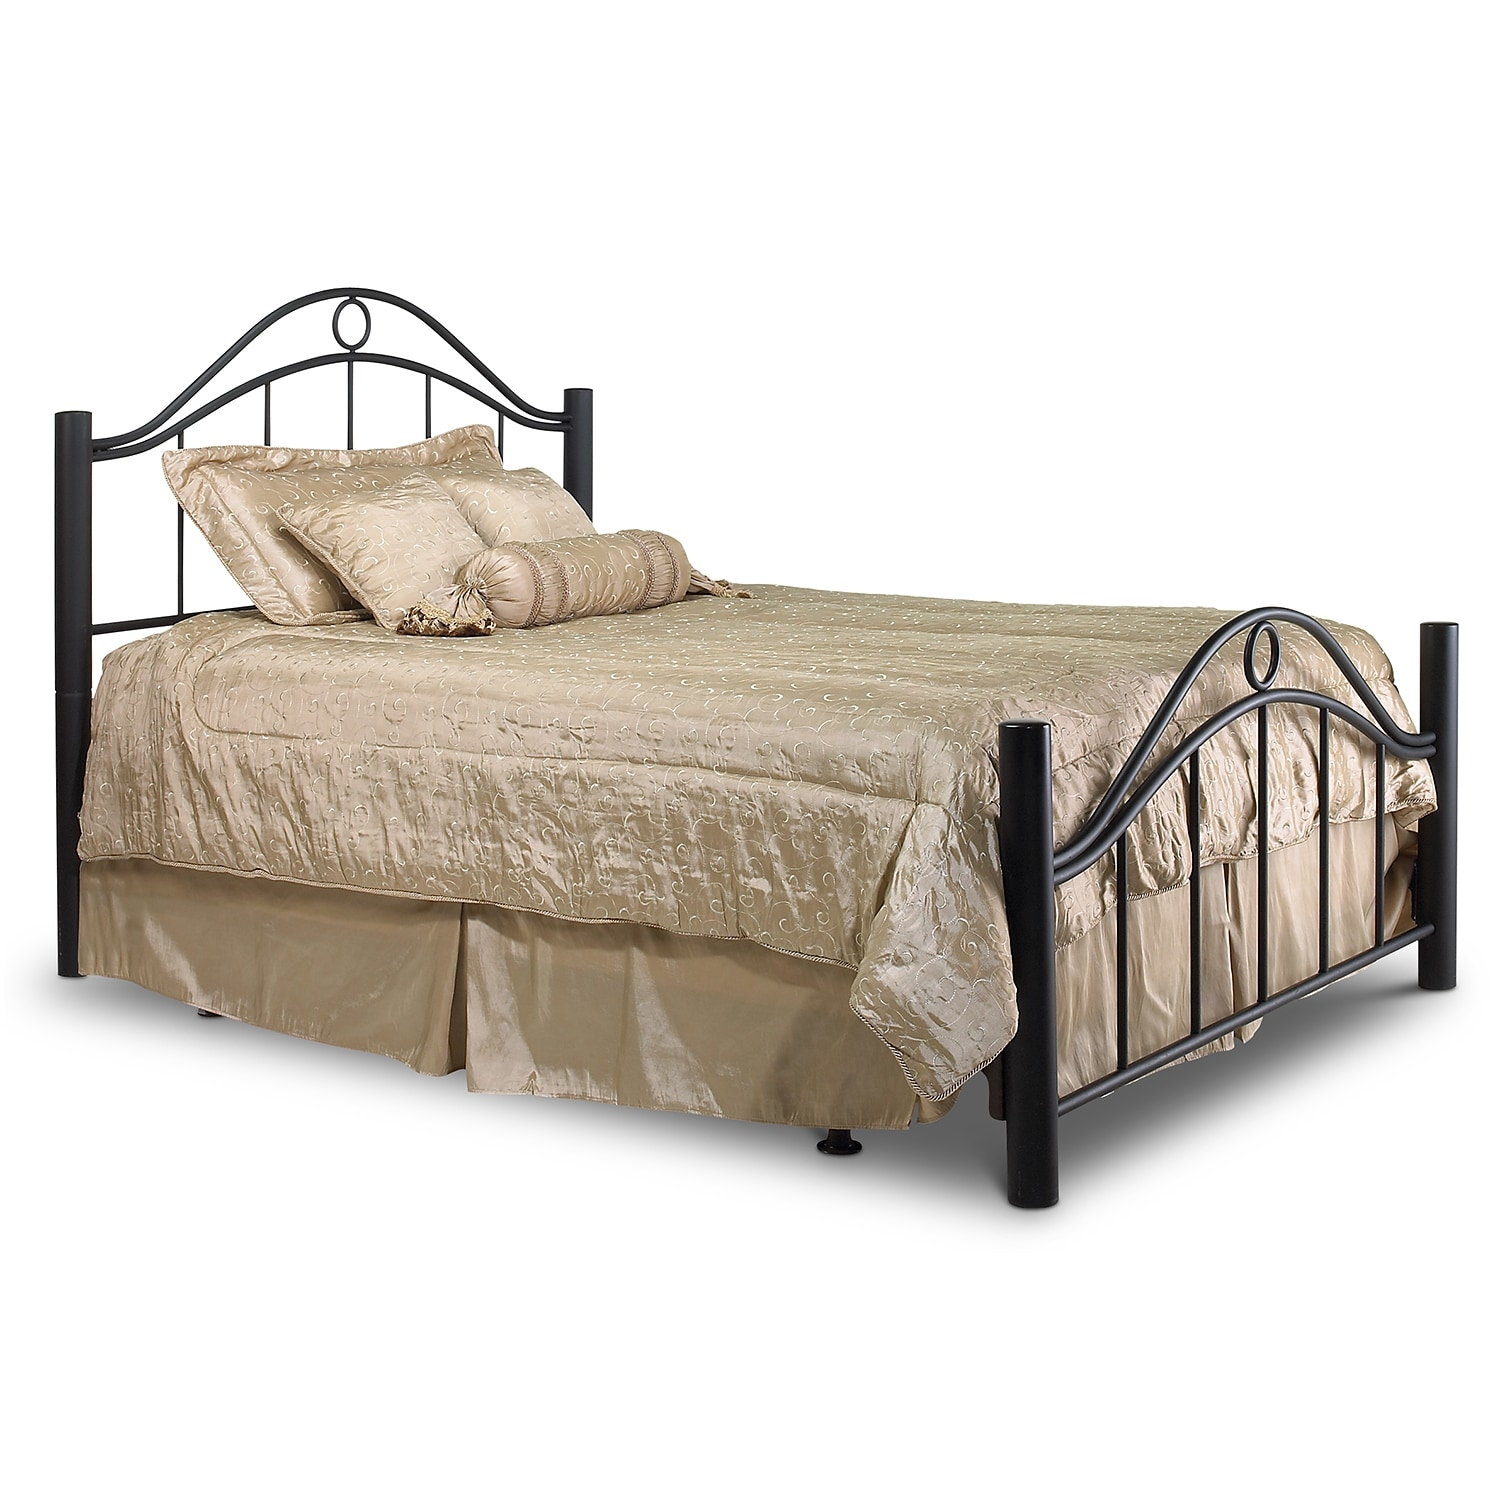 Bedroom Furniture - Linden Queen Bed - Ebony